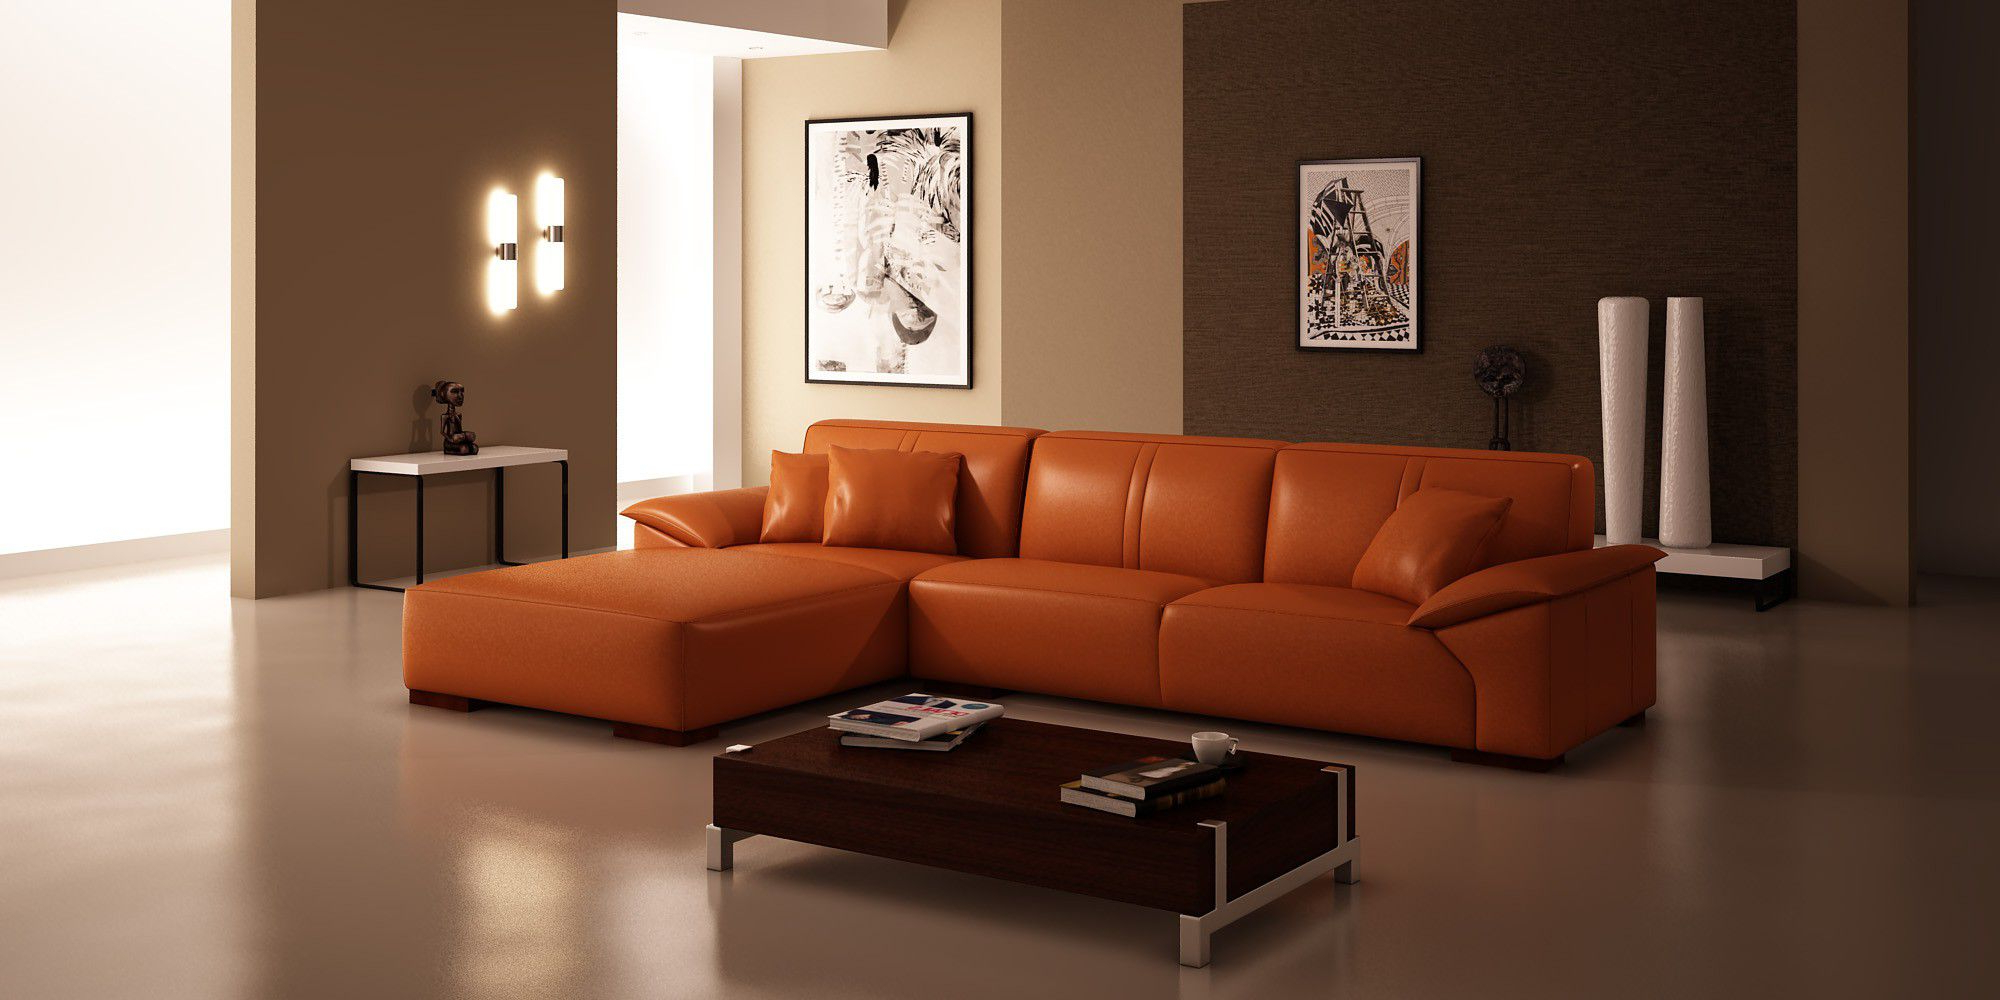 Well Known Orange Sofa Chairs Throughout Furniture: Stunning Sears Sofas For Family Room Ideas (View 19 of 20)